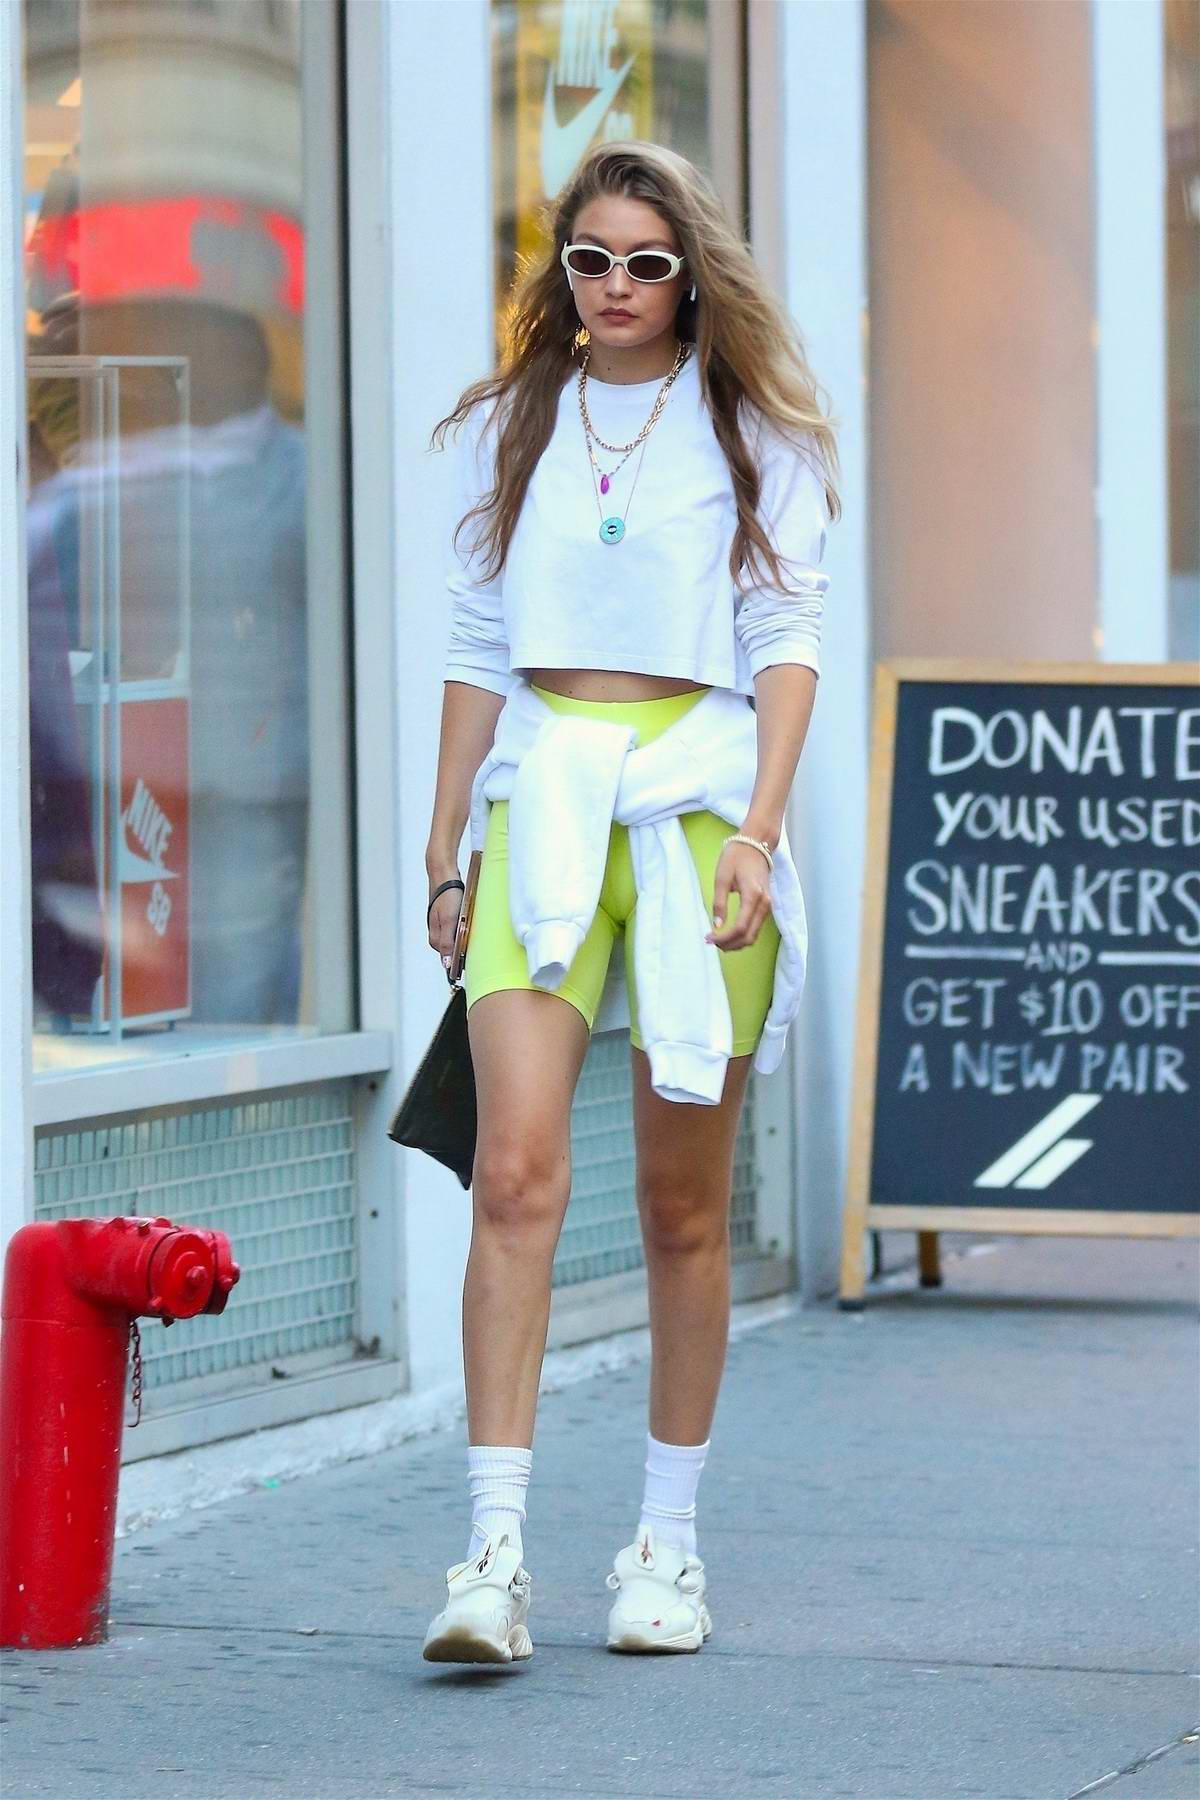 Gigi Hadid looks trendy in a white crop top and green legging shorts as she steps out in New York City